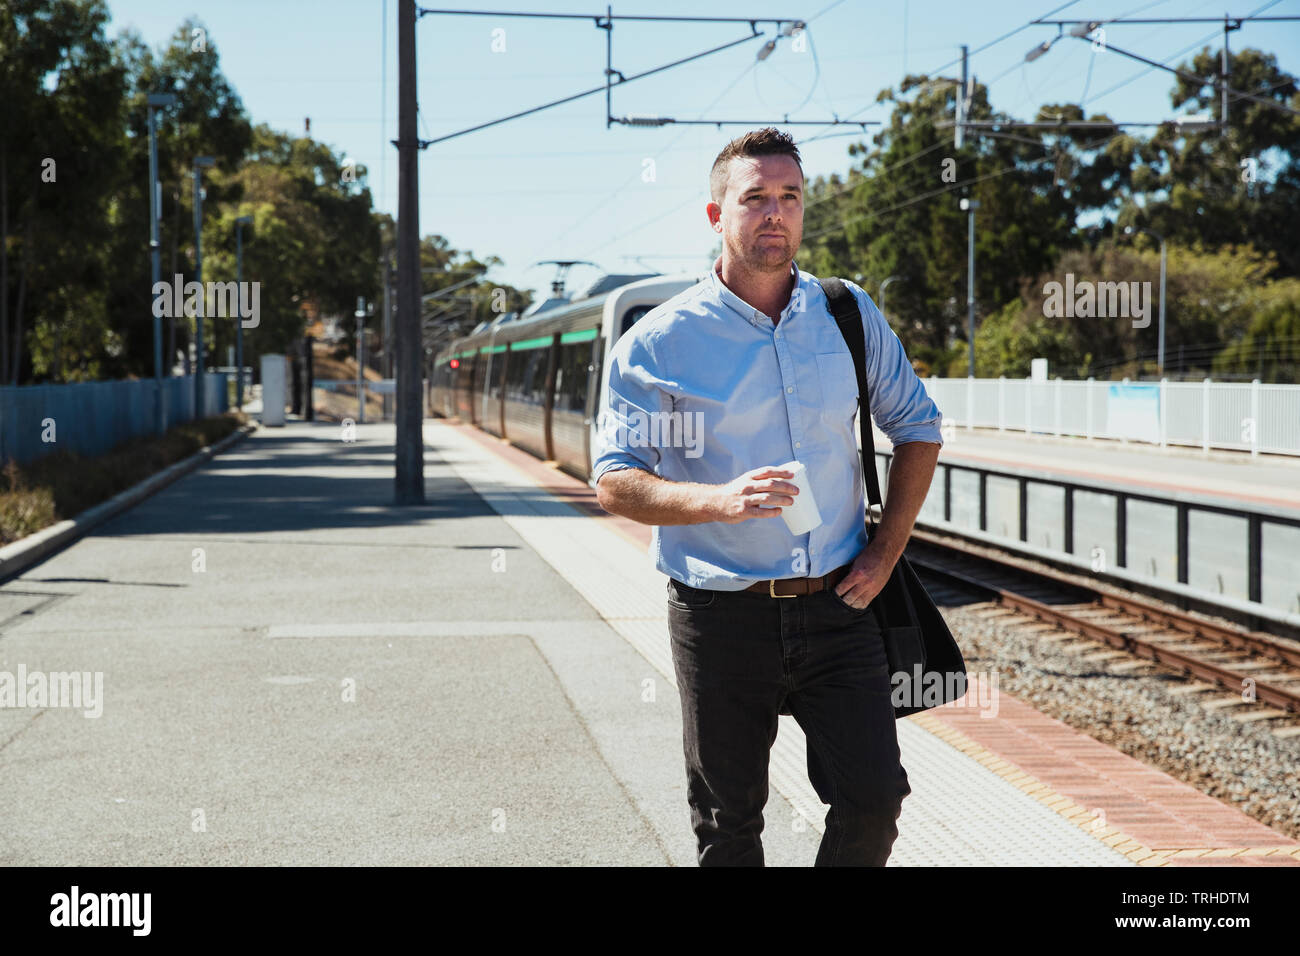 A front-view shot of a mid-adult caucasian businessman walking down a railroad station platform with a cup of coffee in his hand, he is catching the t - Stock Image